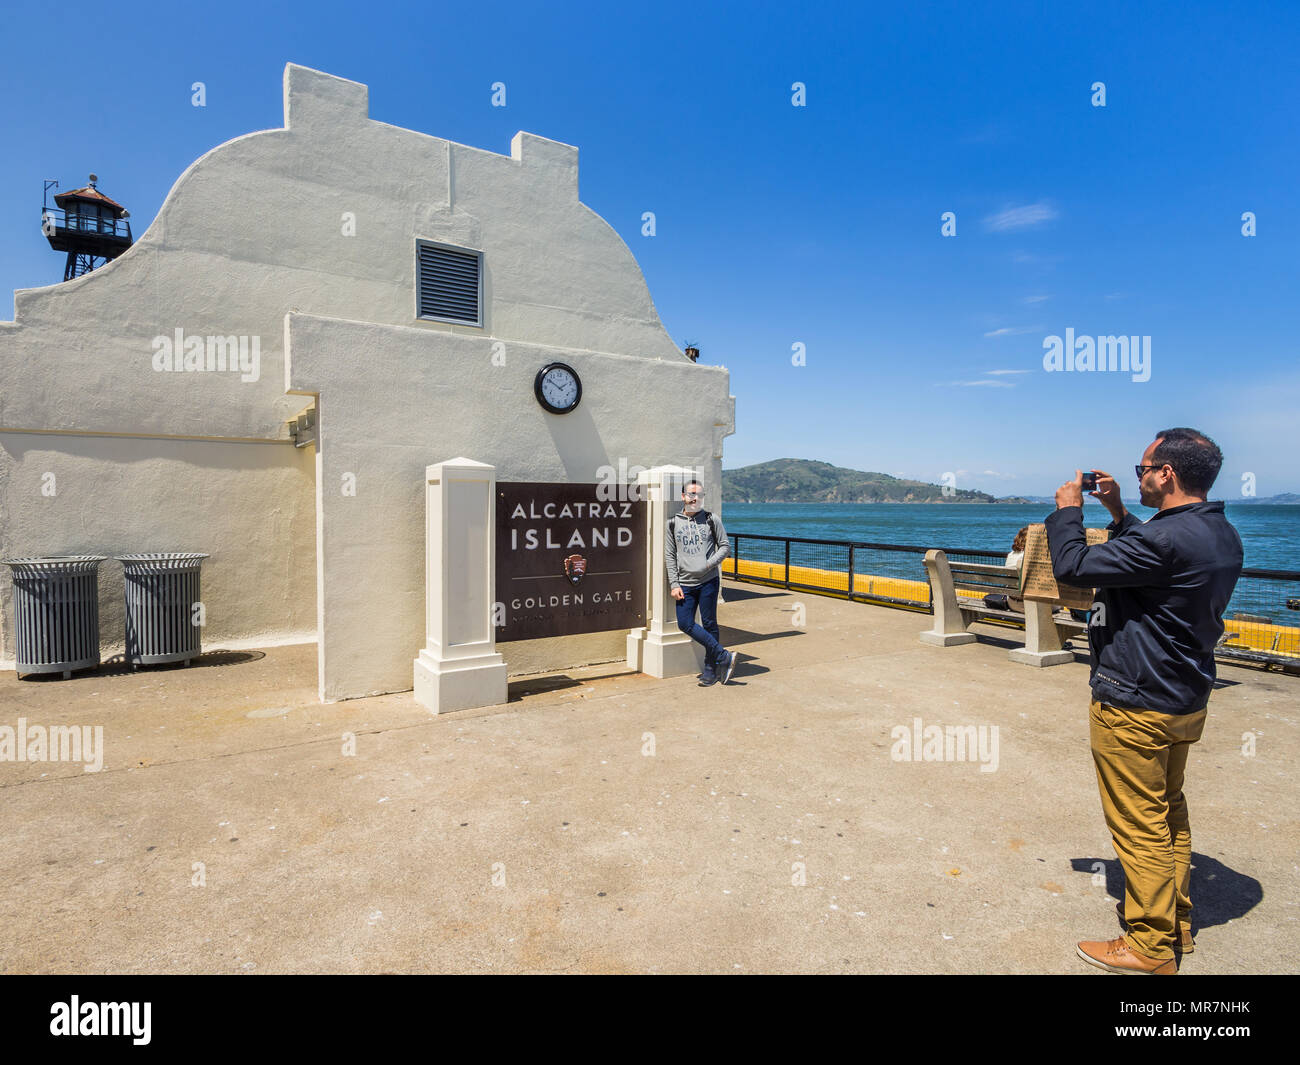 Two friends photographing at Alcatraz prisoin, San Francisco, CA, USA. - Stock Image